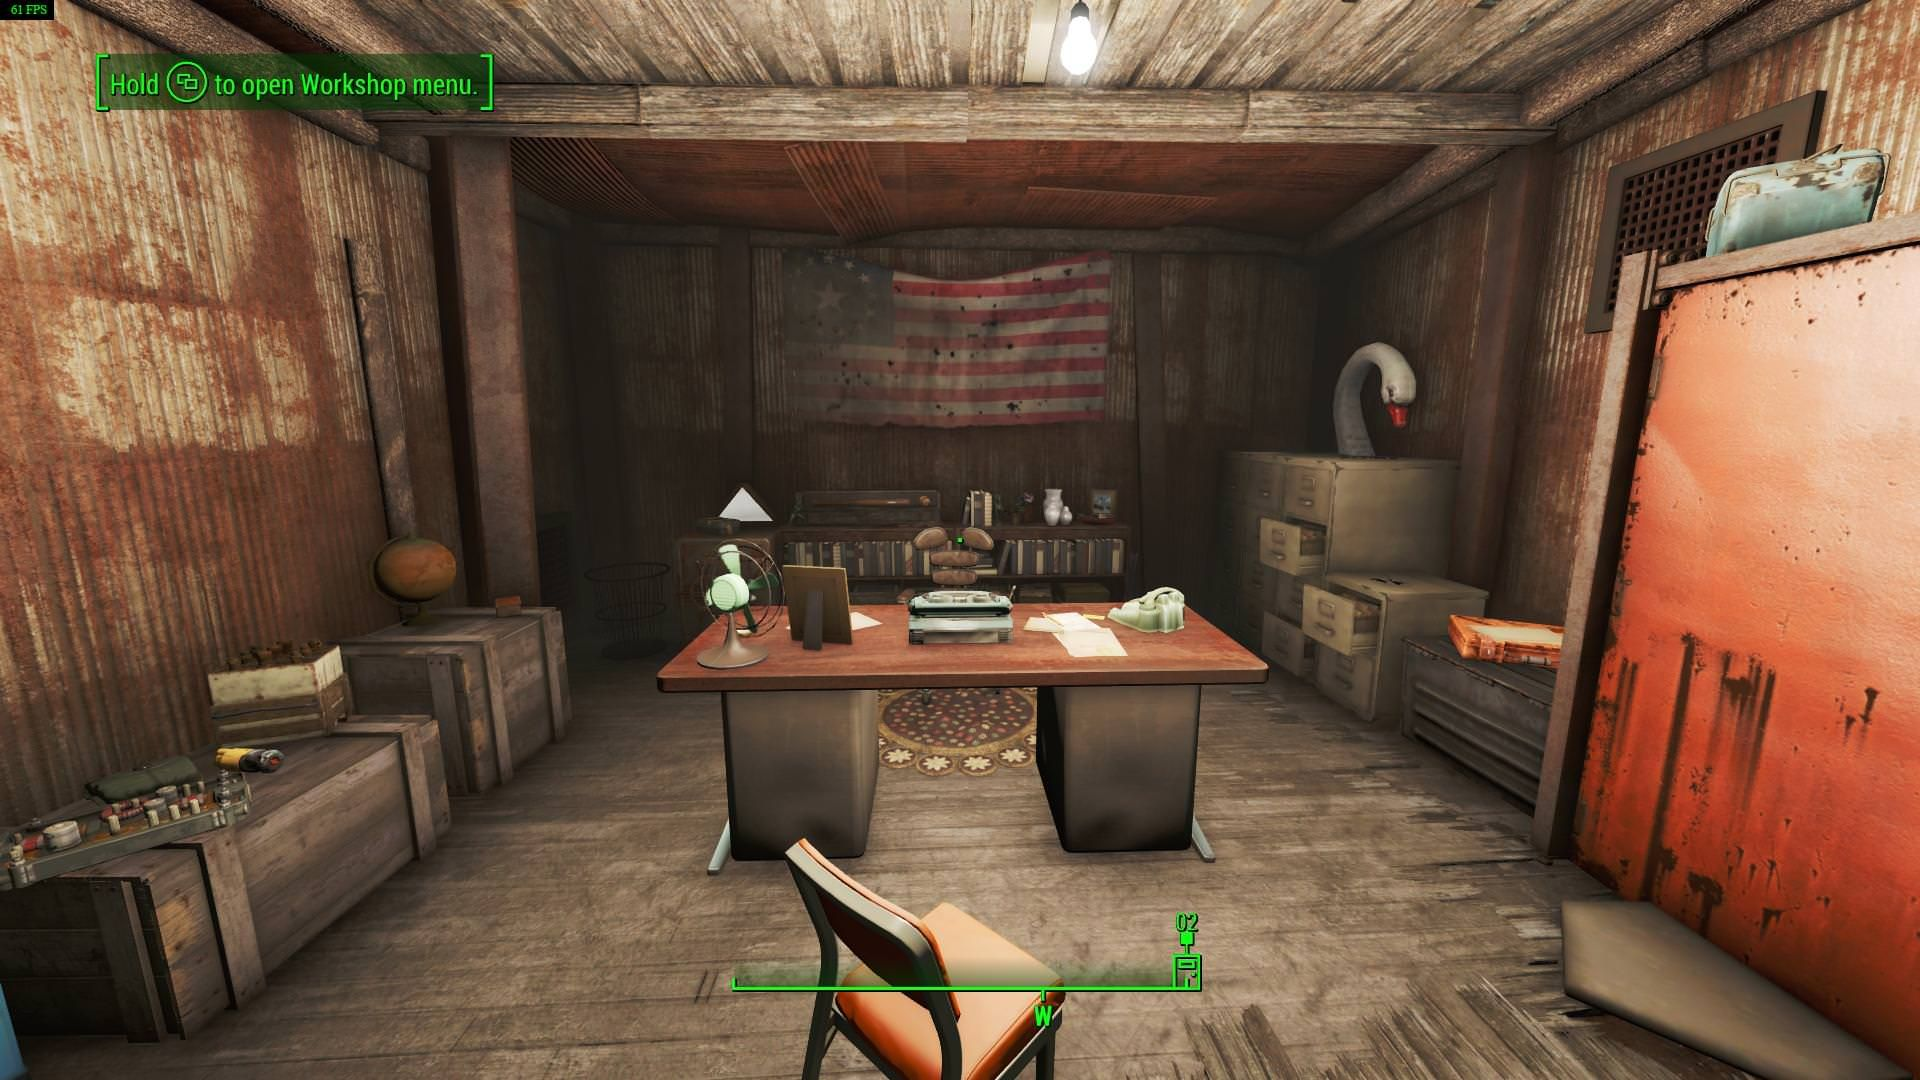 I Had A Lot Of Fun Decorating Home Plate Even If My Character Has Never  Stayed The Night! #Fallout4 #gaming #Fallout #Bethesda #games #PS4share  #PS4 #FO4